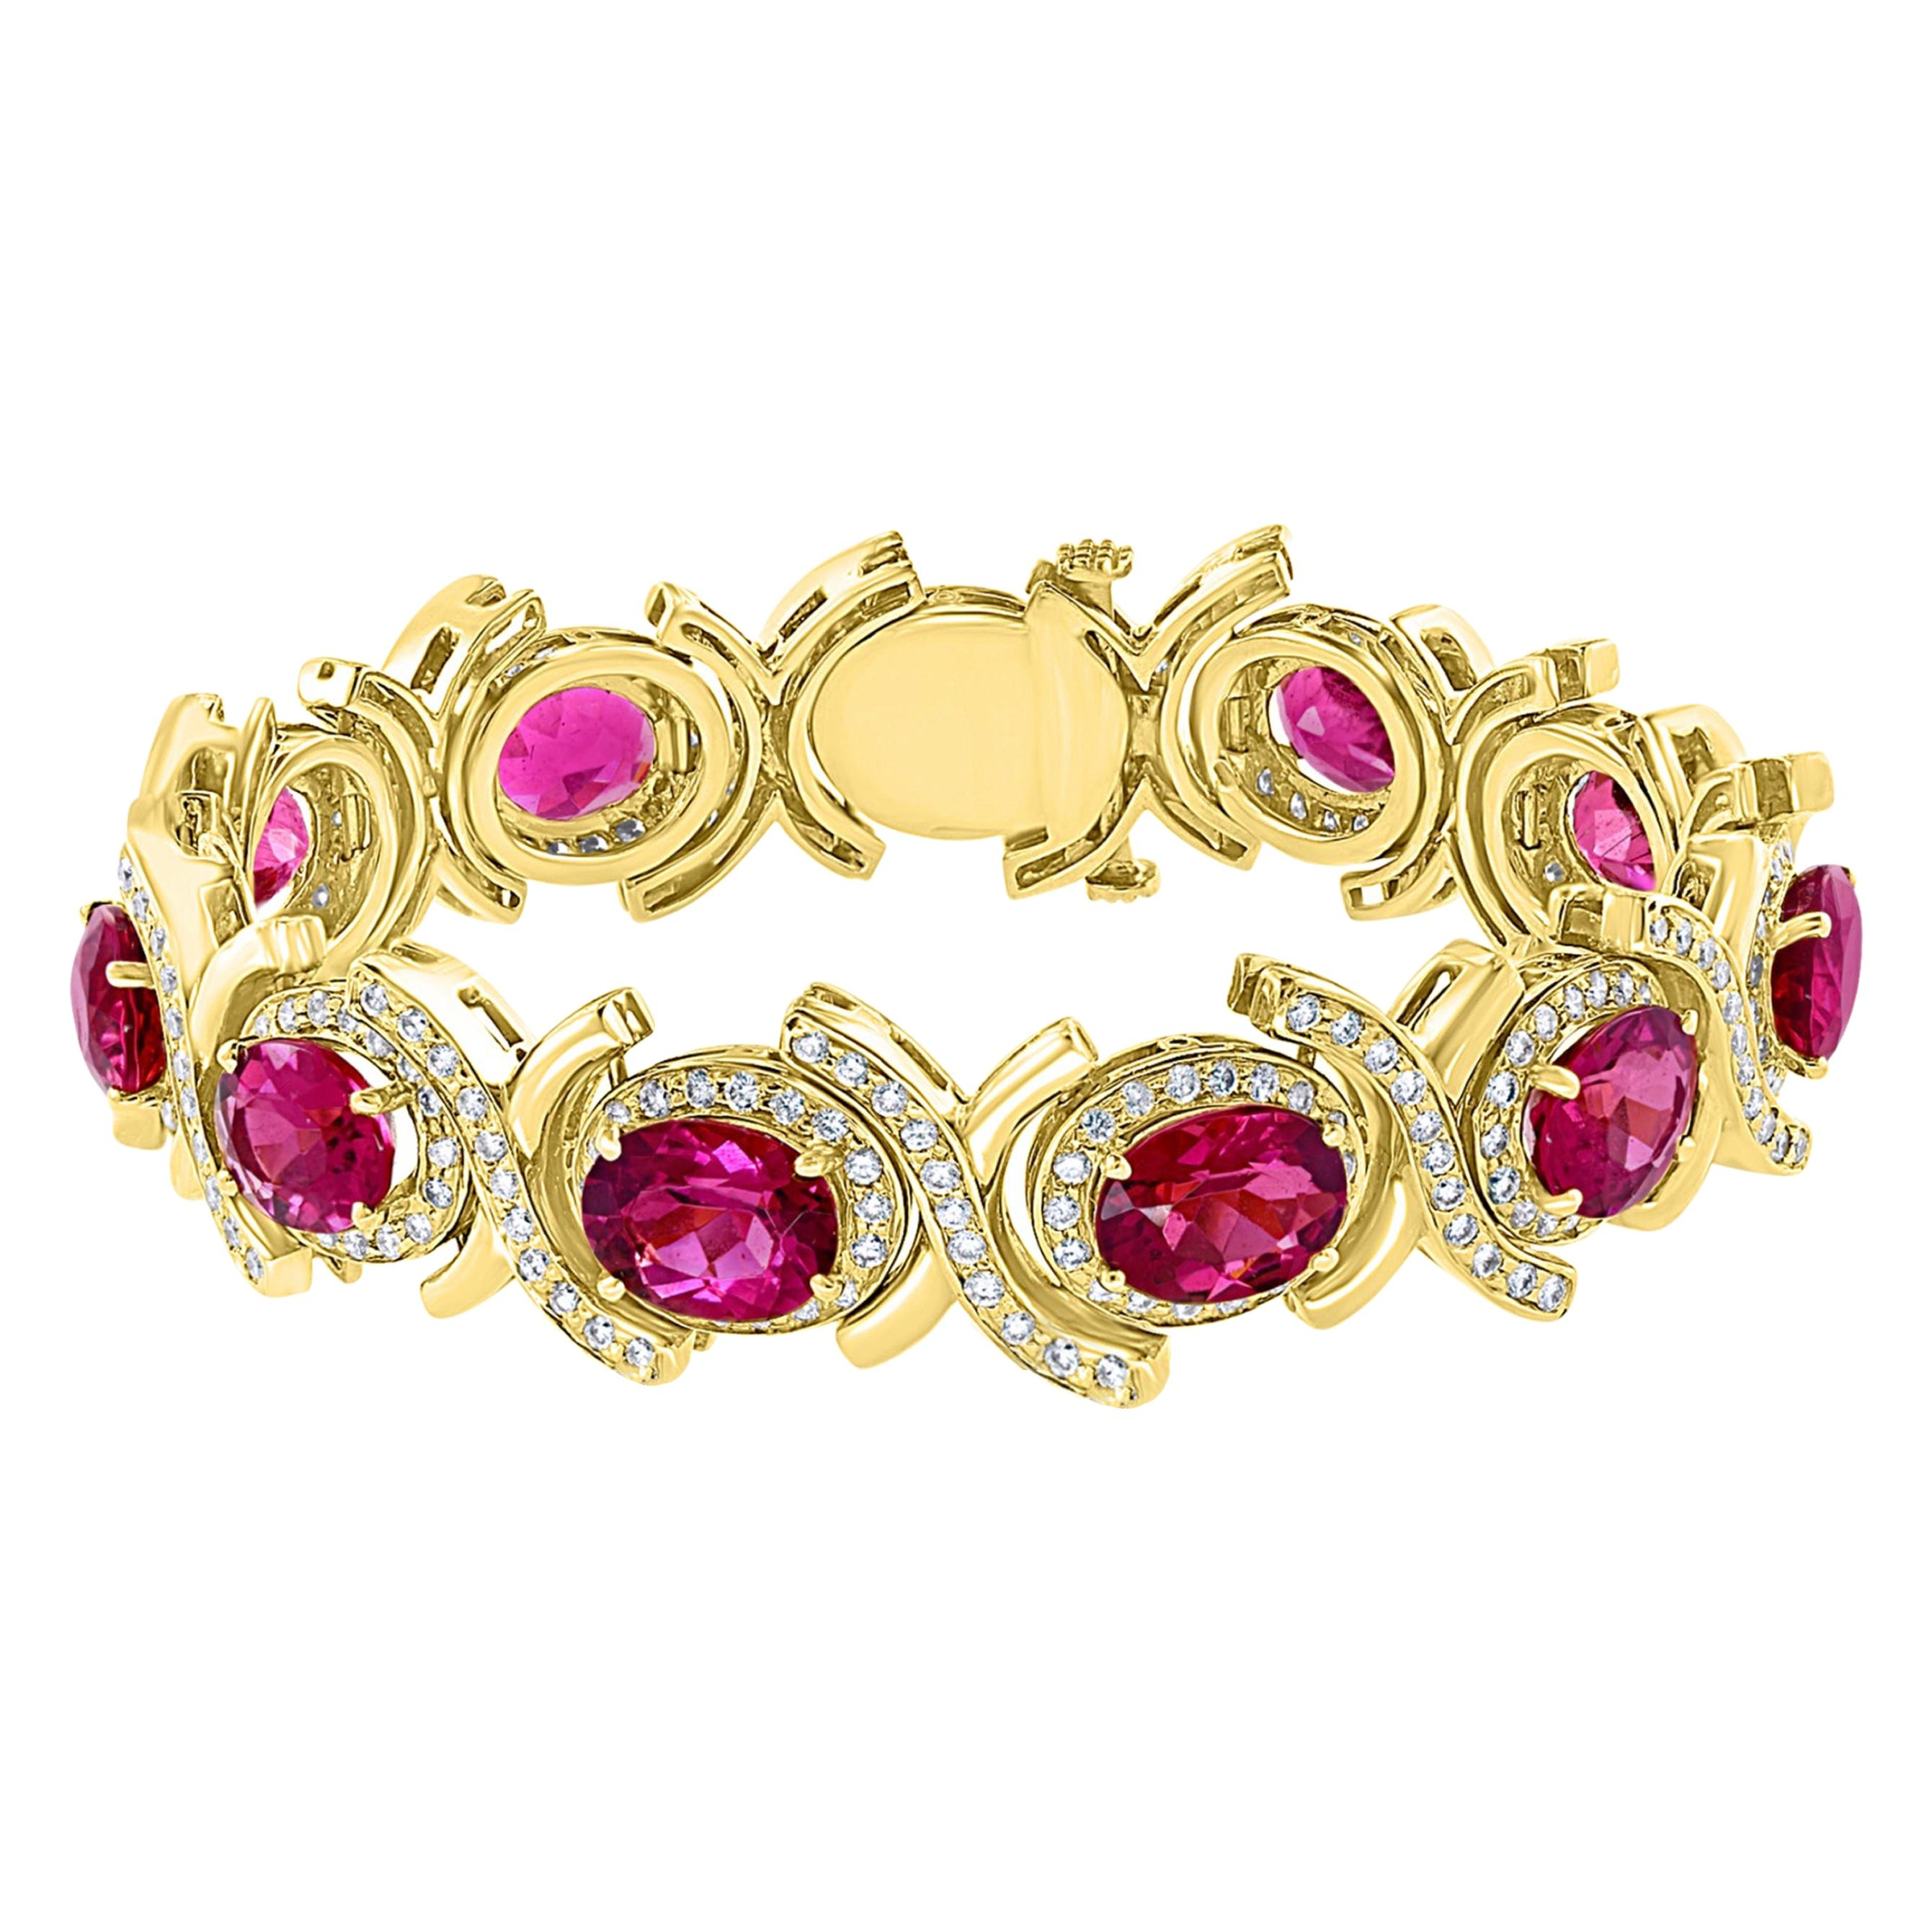 35 Carat Pink Tourmaline and 4.5 Carat Diamond Bracelet 14 Karat Yellow Gold